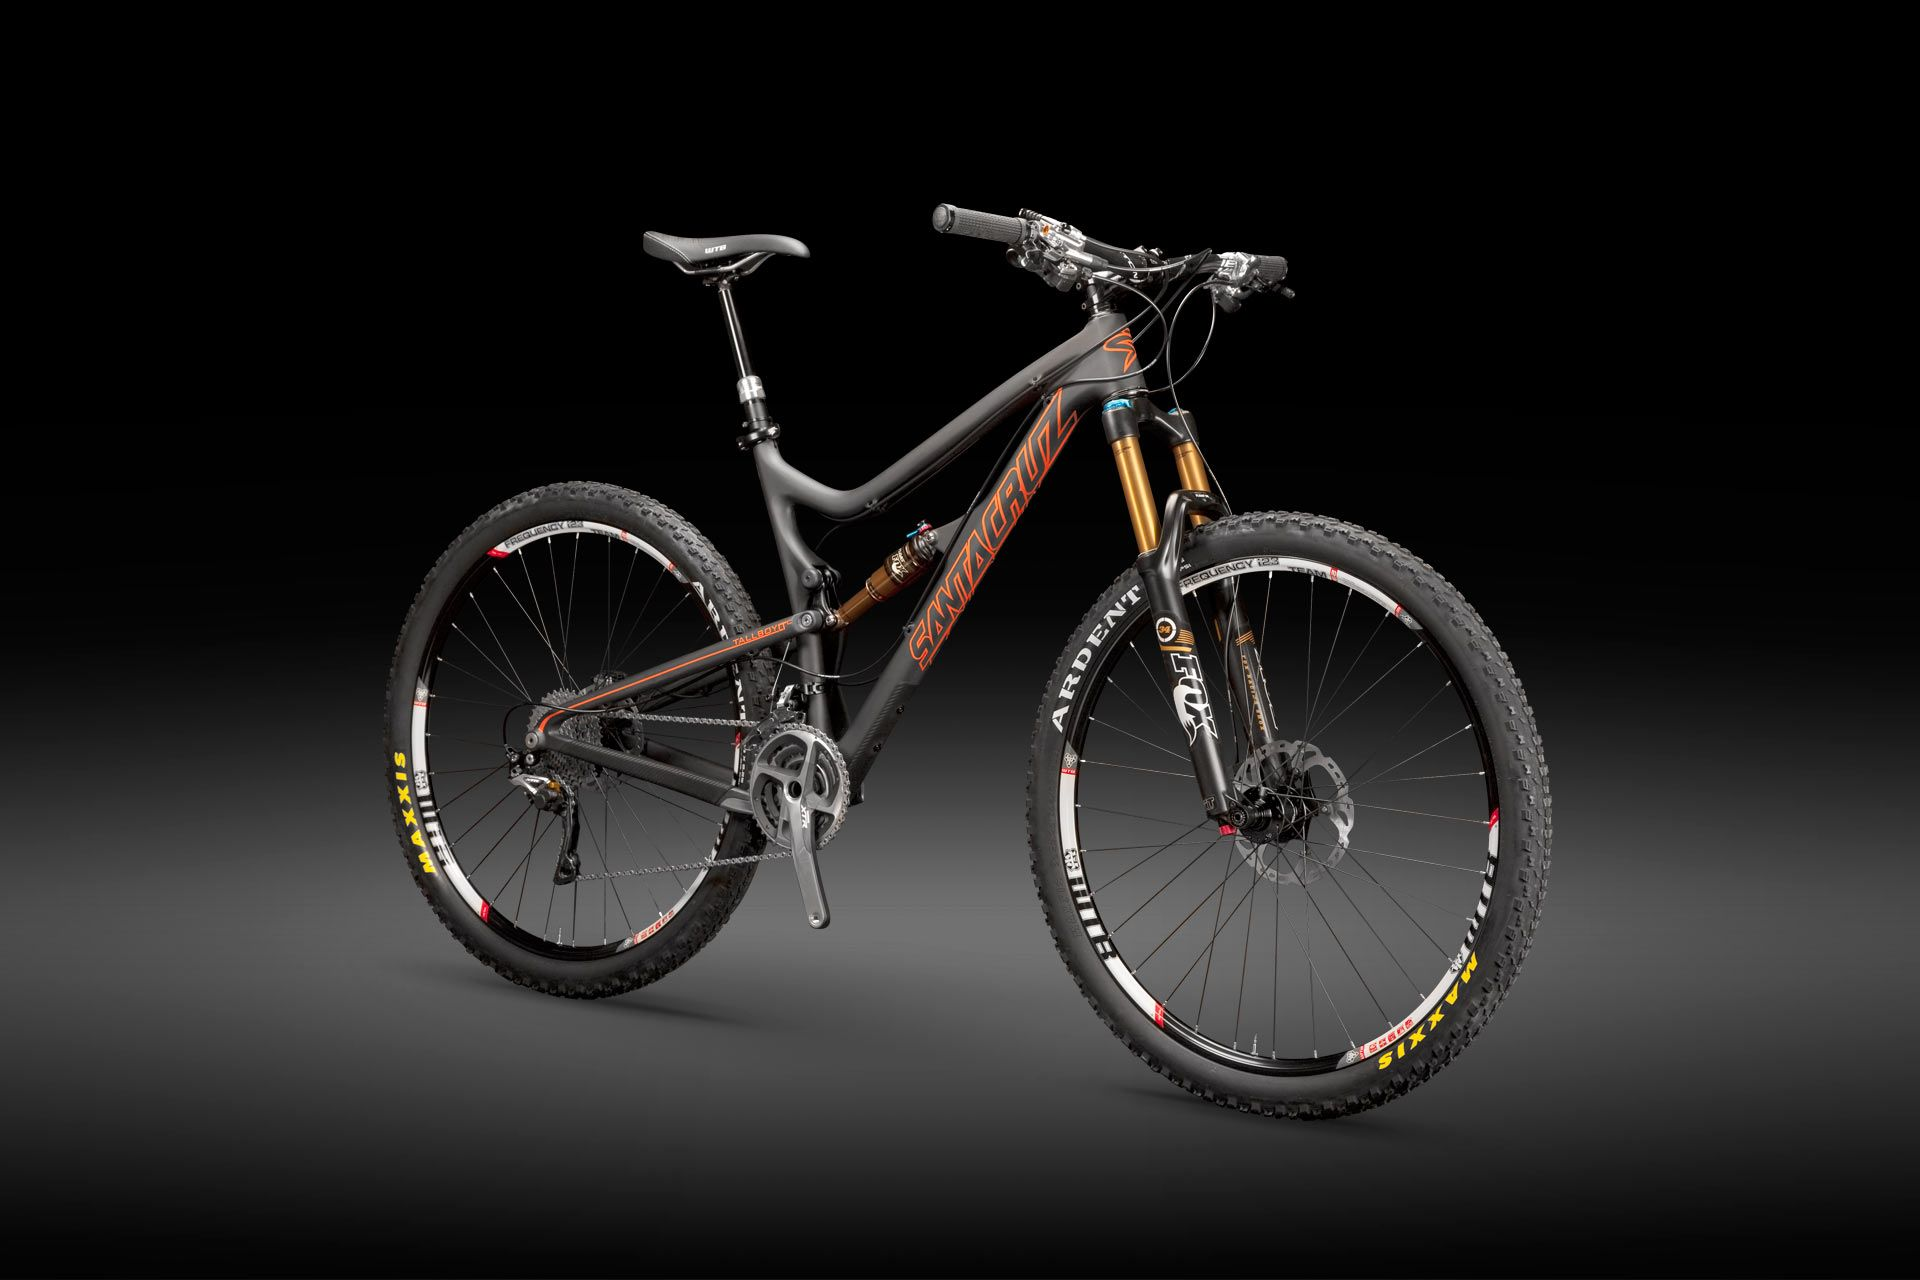 Tallboylt Carbon So Excited To Start Riding This Beast What